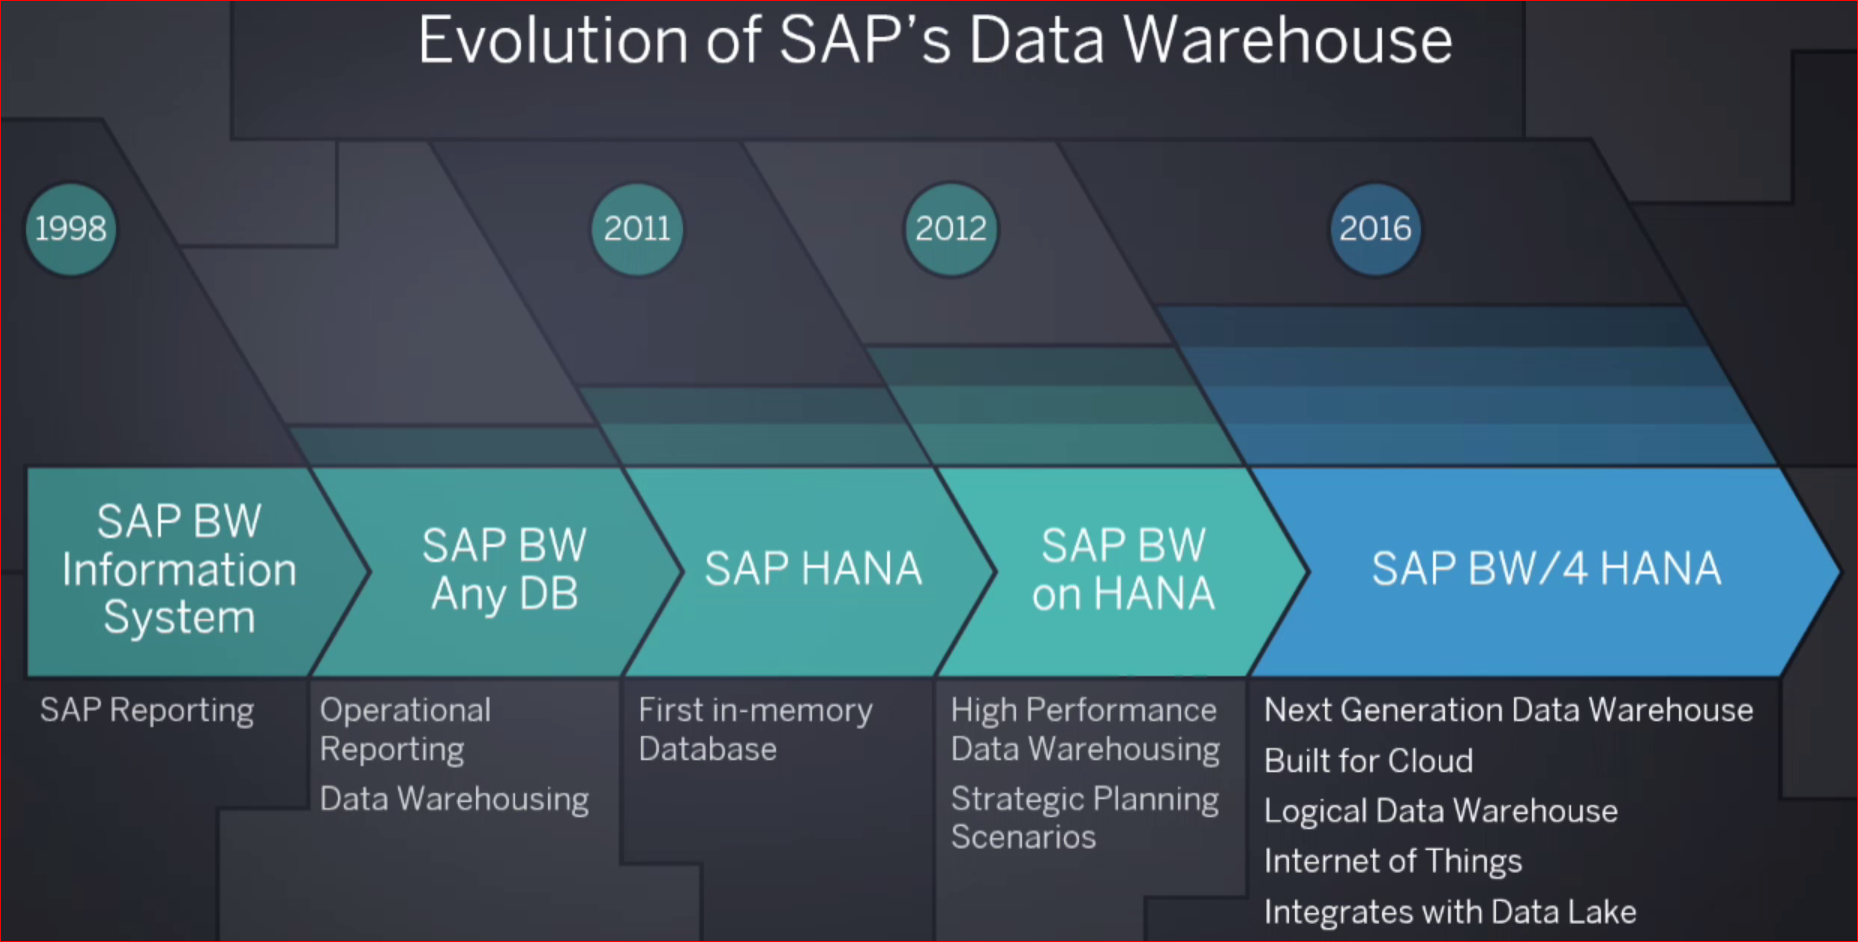 Launch Of Sap S Next Generation Data Warehouse Bw 4hana